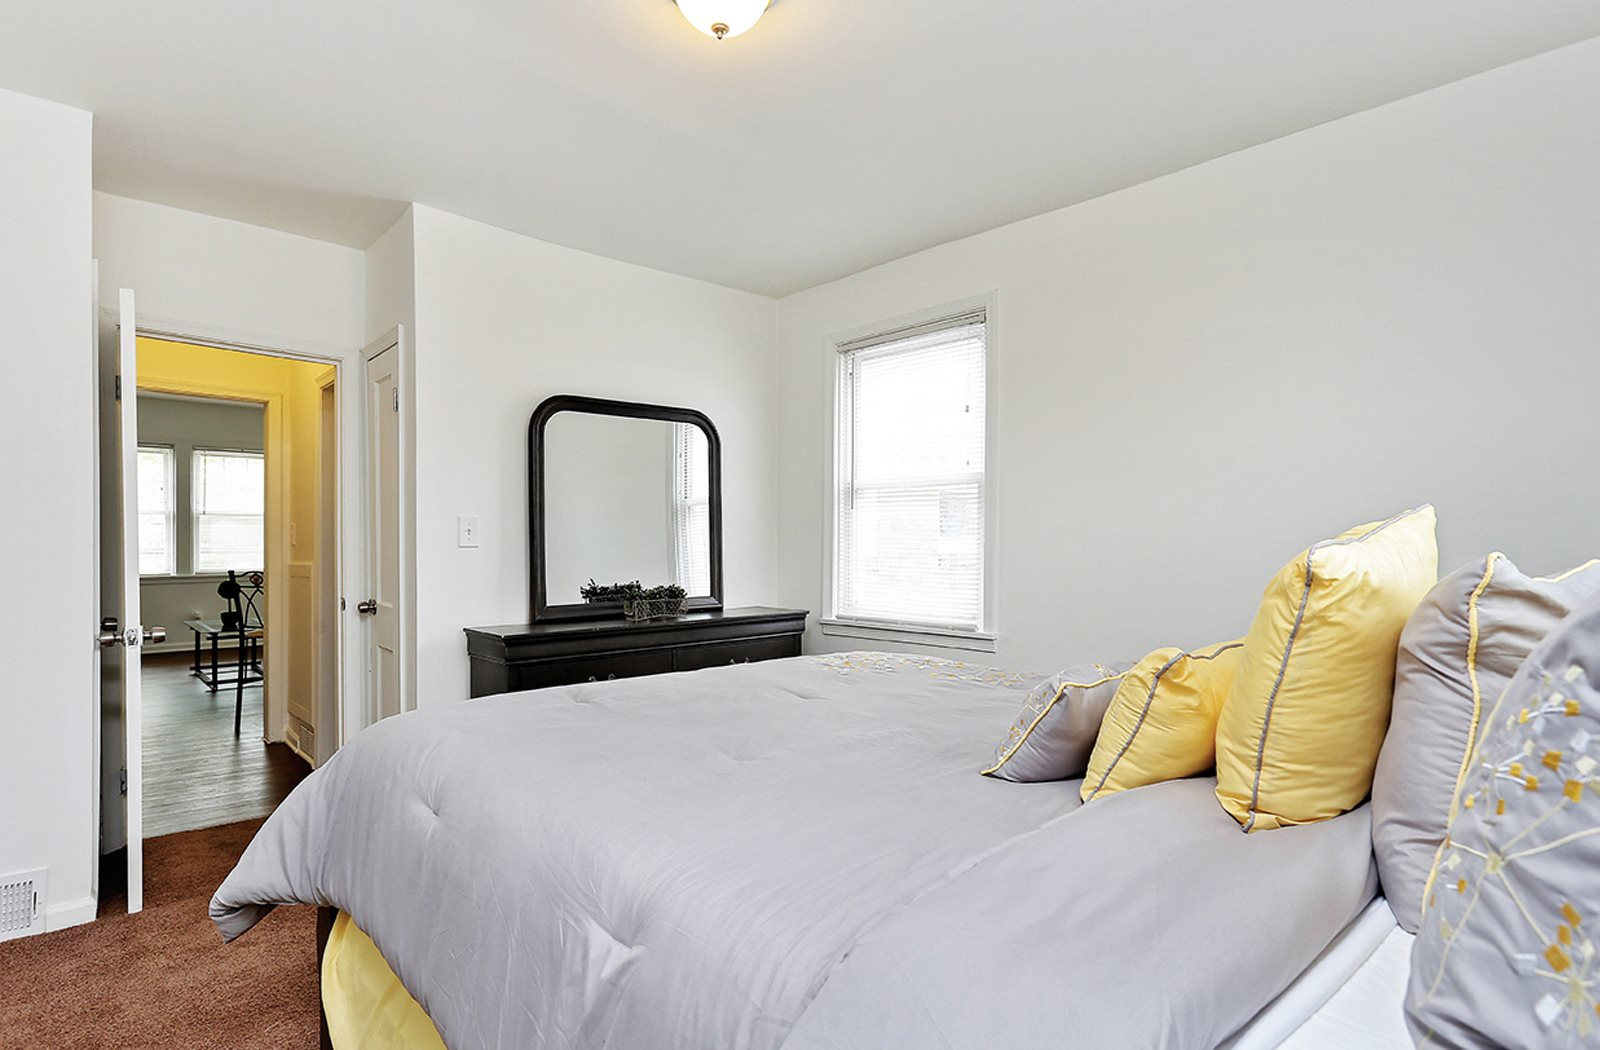 Pangea Oaks Apartments are affordable housing options in Baltimore.